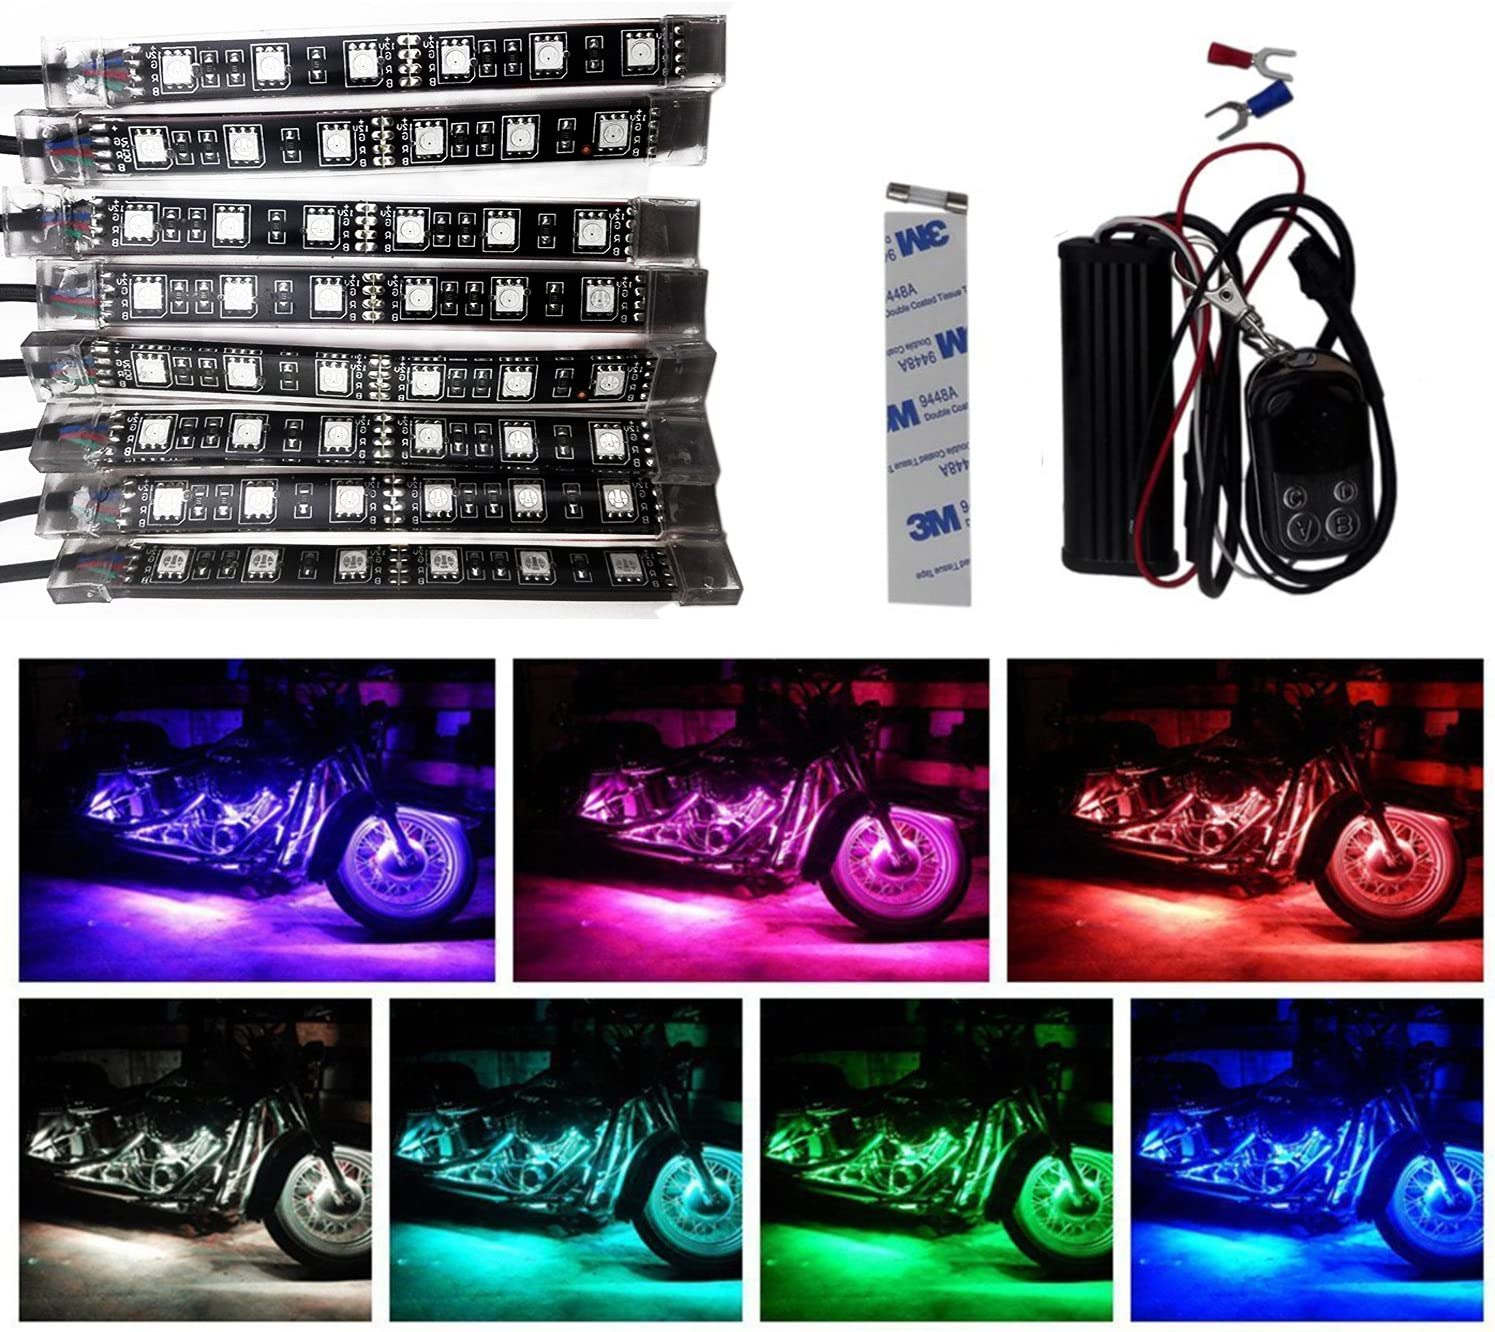 TASWK Motorcycle ATV 8 Strip RGB LED Kit Remote Controller Multi Color Neo Light Glow for Honda Kawasaki Suzuki Ducati Polaris KTM BMW